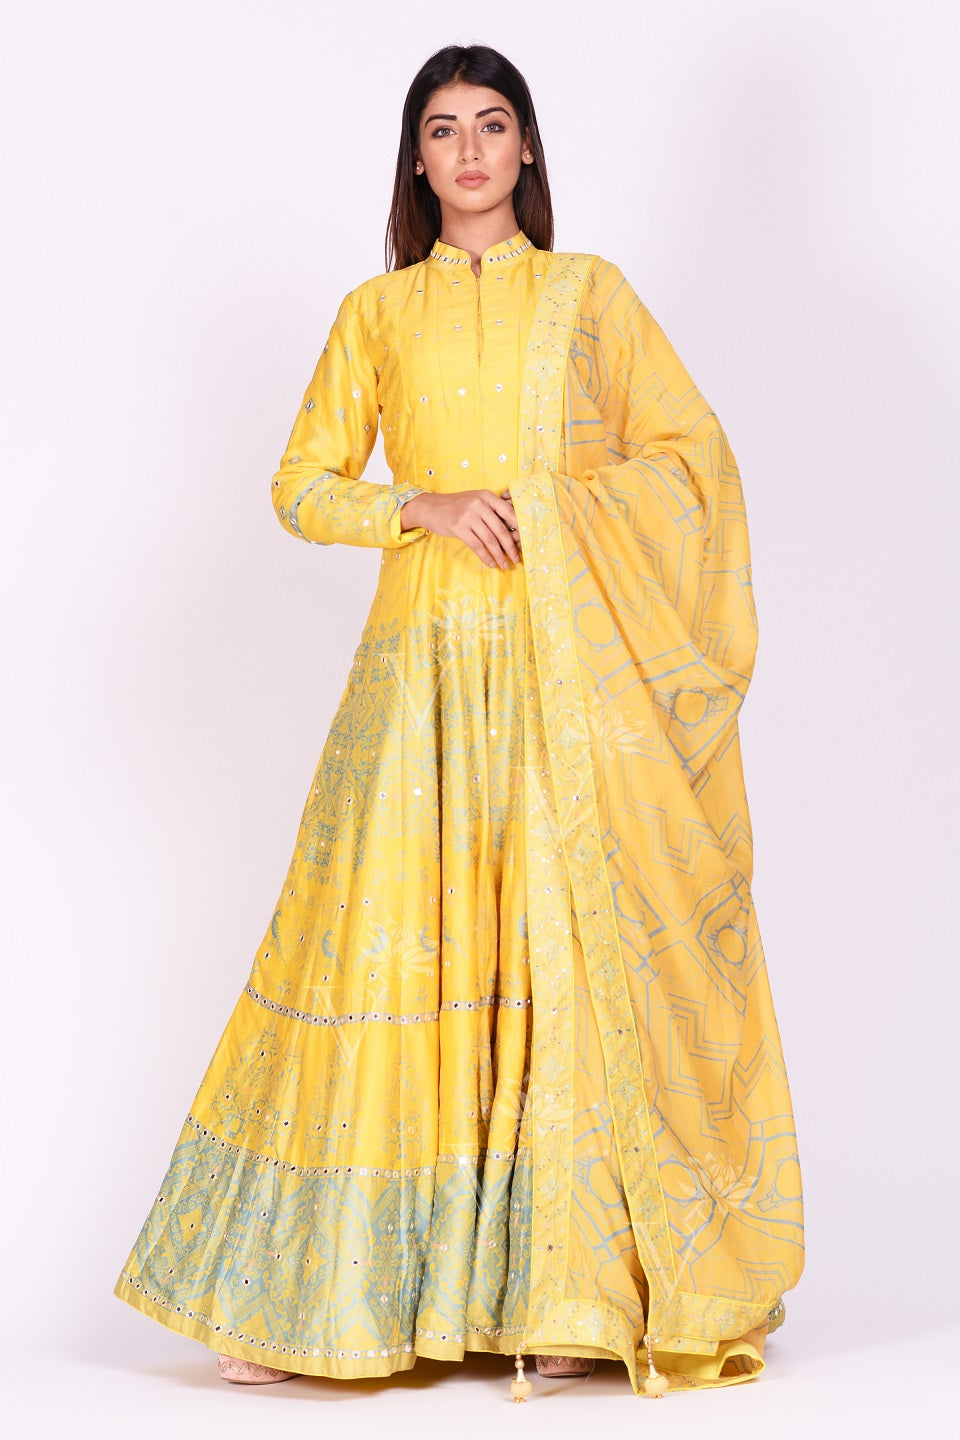 Shop yellow printed and mirror embroidery silk Anarkali online in USA with dupatta. Make a stunning fashion statement at weddings and special occasions with an exquisite collection of designer Anarkali suits, designer lehengas, Indian designer dresses from Pure Elegance Indian fashion store in USA. -frontpose